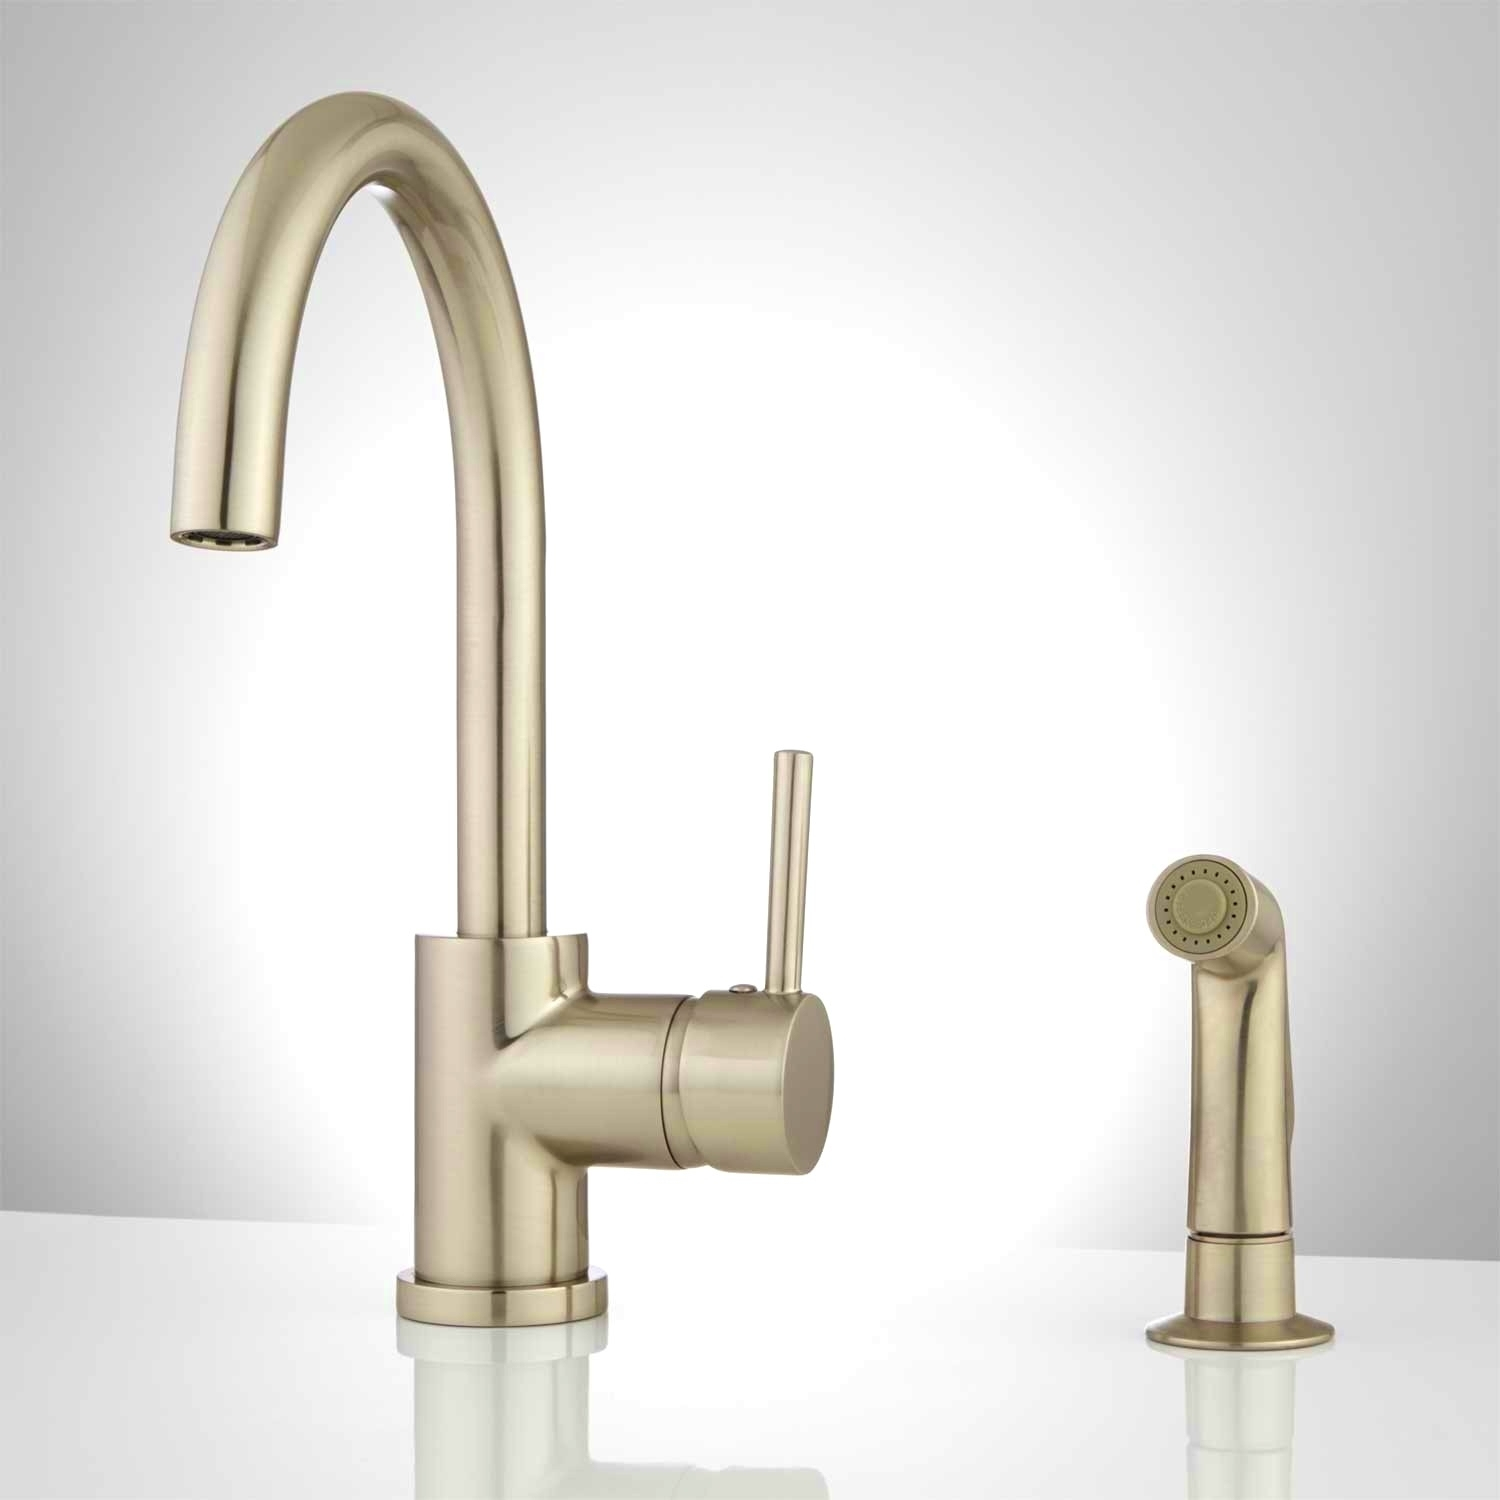 Ideas, grohe atrio bar faucet grohe atrio bar faucet decorating outstanding grohe faucets for startling kitchen 1500 x 1500  .